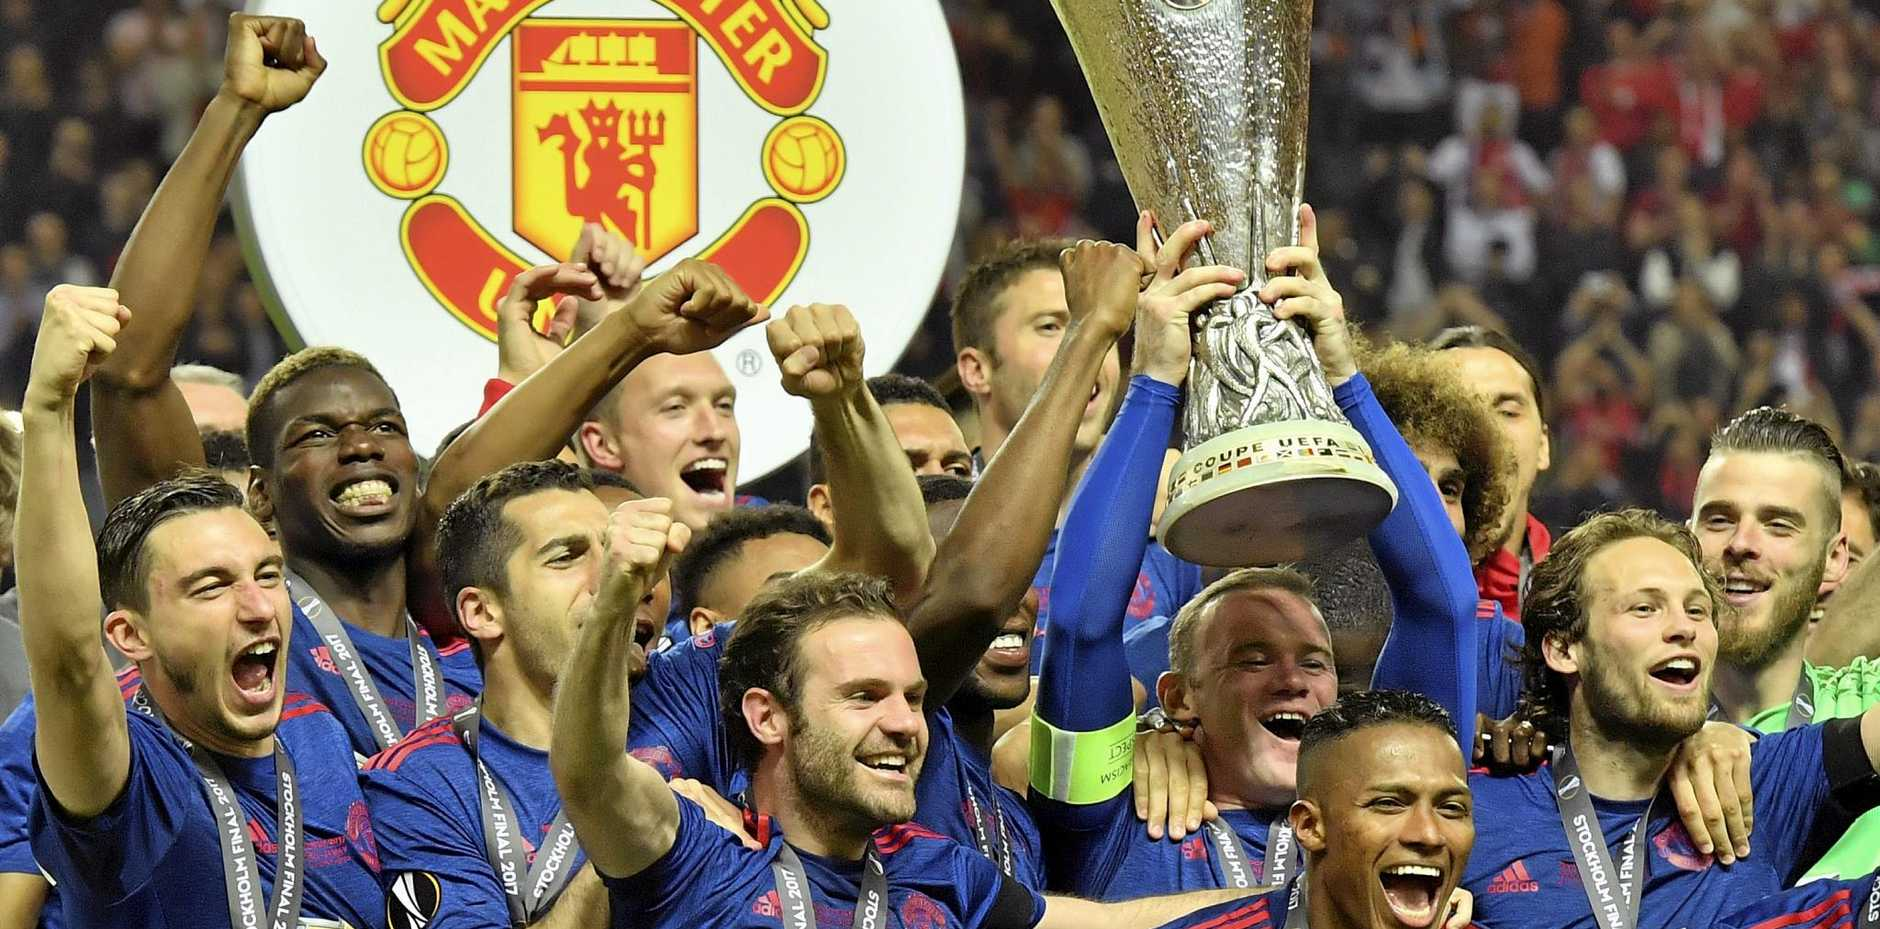 Manchester United's Wayne Rooney lifts the trophy after his side won the Europa League final.